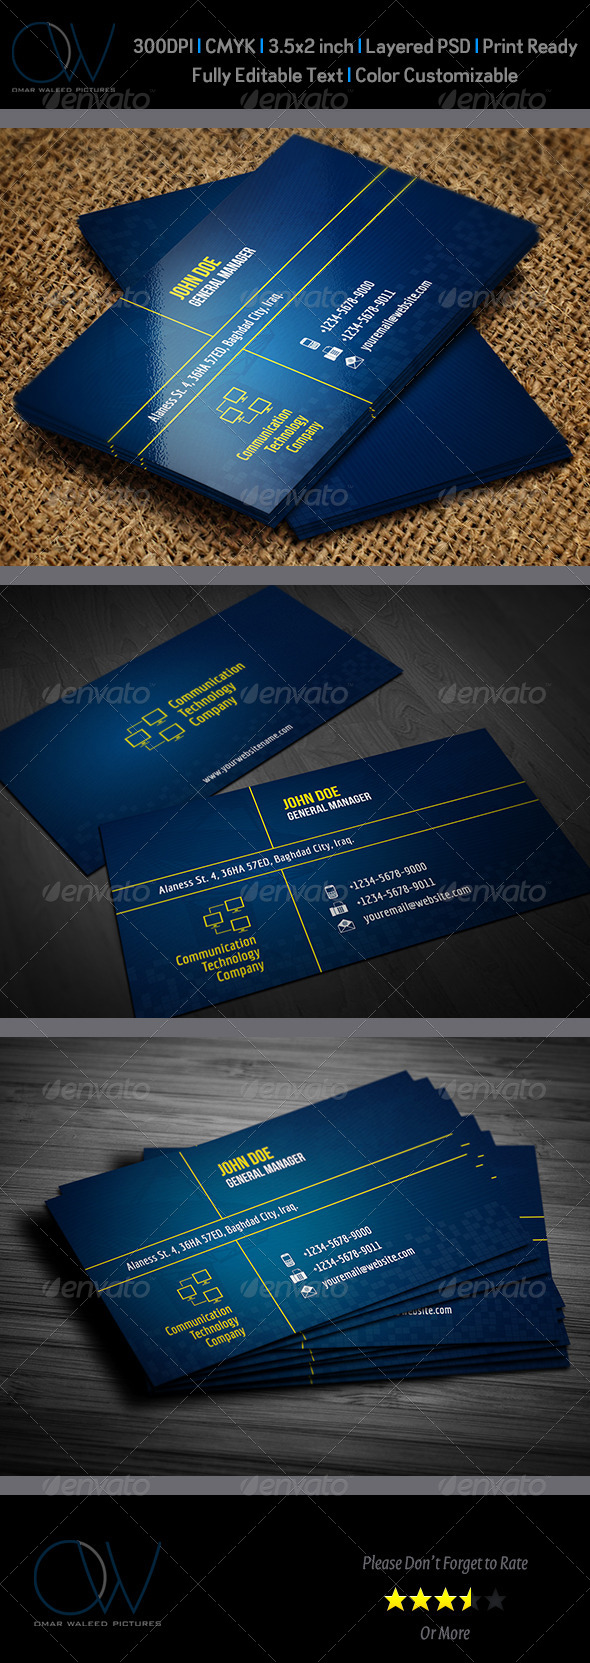 Communication technology business card by owpictures graphicriver communication technology business card creative business cards magicingreecefo Gallery